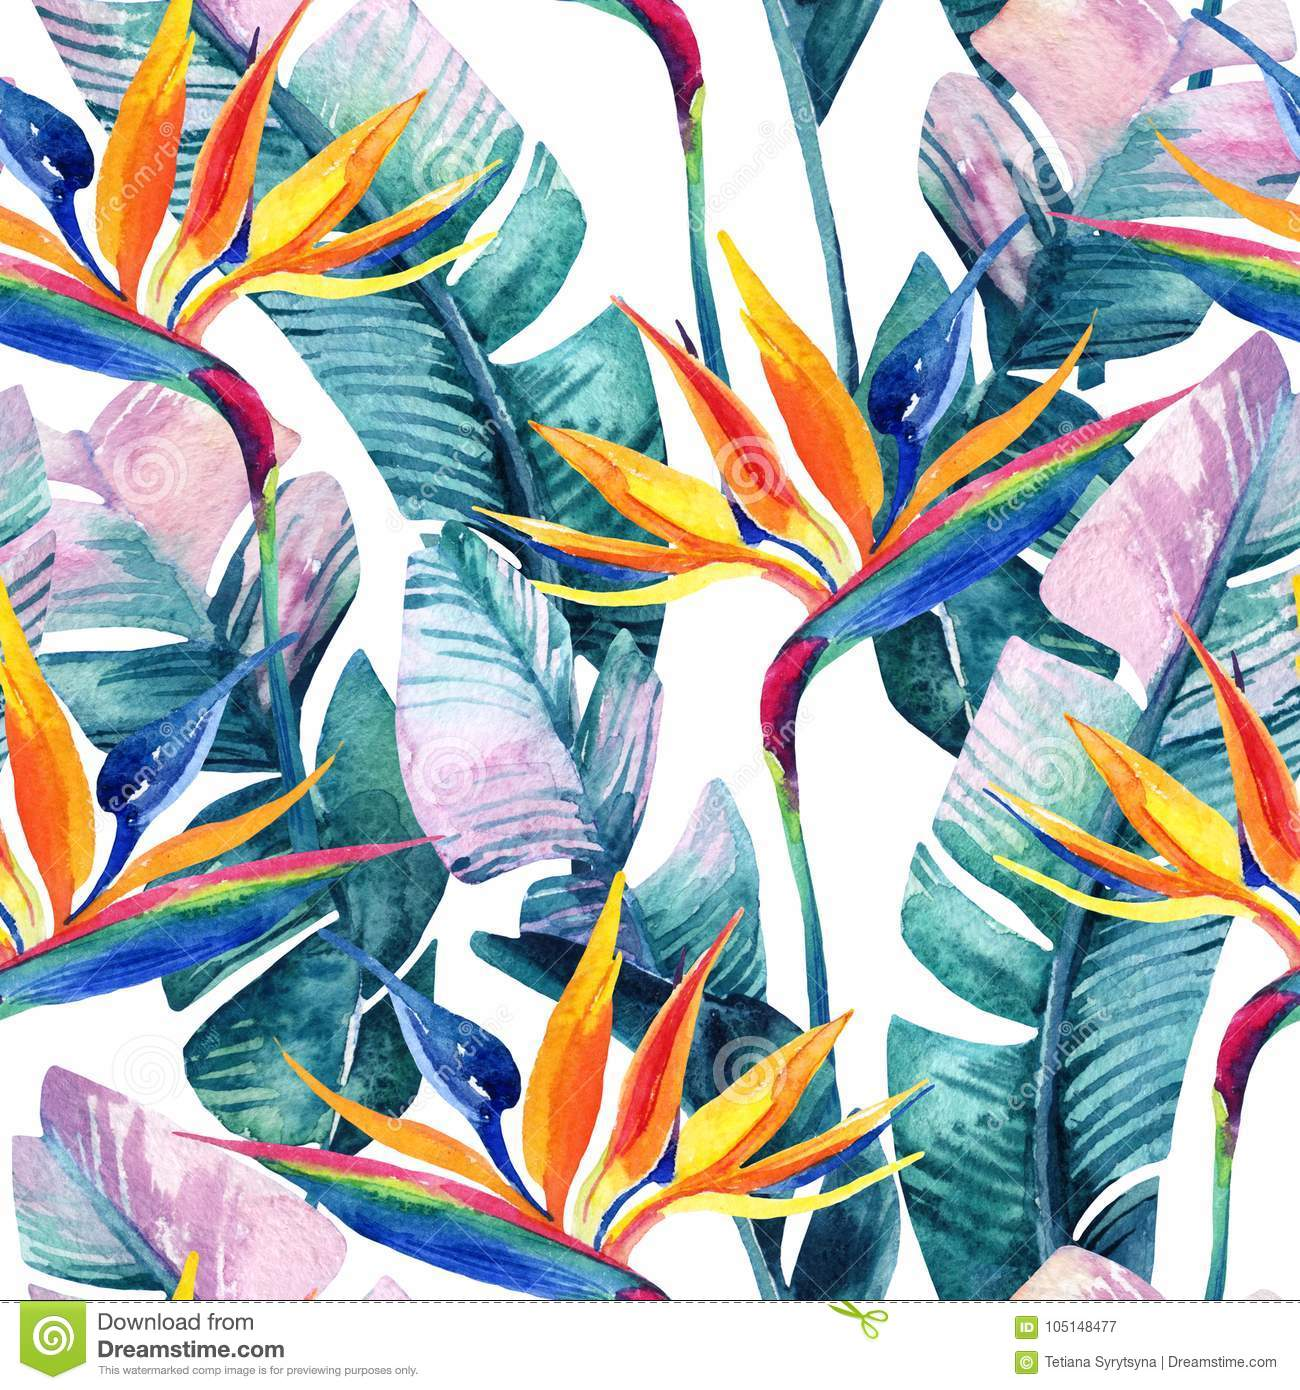 Watercolor Tropical Seamless Pattern With Bird-of-paradise ... on bird of paradise companion plants, bird of paradise quilt pattern, bird of paradise plant varieties, bird of paradise seed germination, bird of paradise flowers delivered, bird of paradise plant problems, bird of paradise hardiness zone, bird of paradise bedding, bird of paradise plant diseases, bird of paradise houseplant care, bird of paradise tree care,